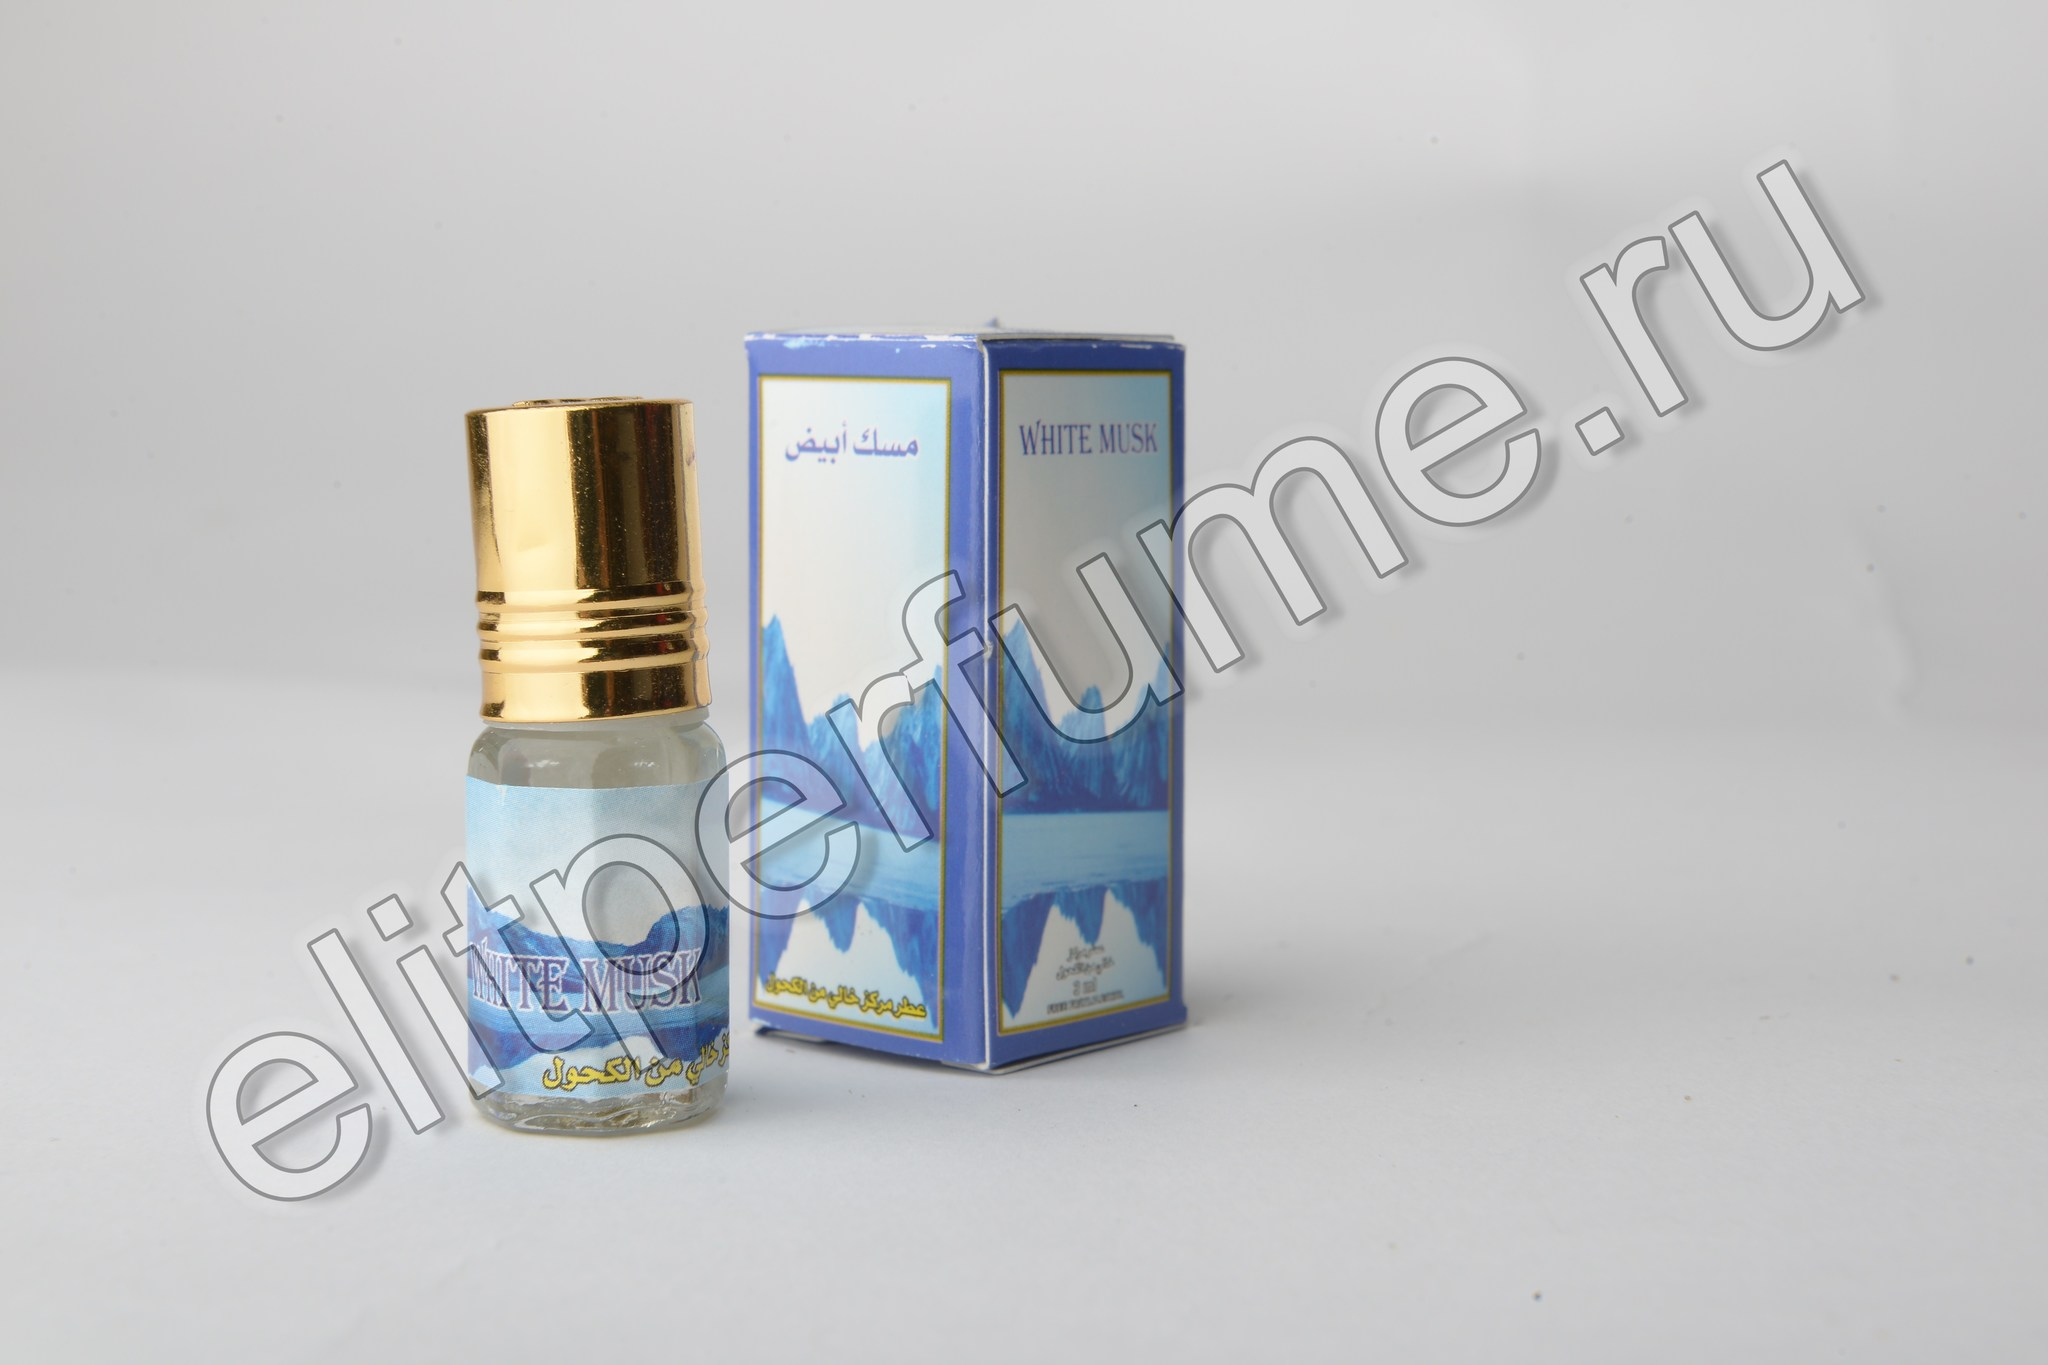 White musk 3 мл арабские масляные духи от Захра Zahra Perfumes